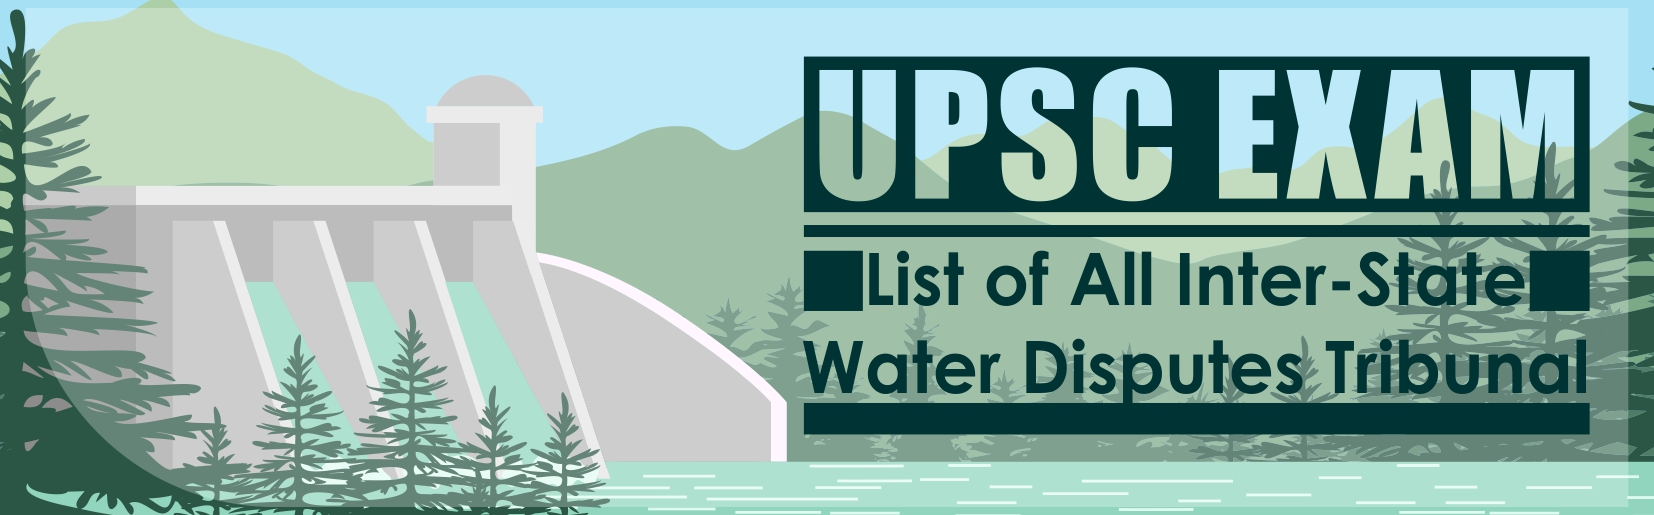 Upsc - Upsc Exam A Glimpse At All Inter State Water Disputes Tribunal